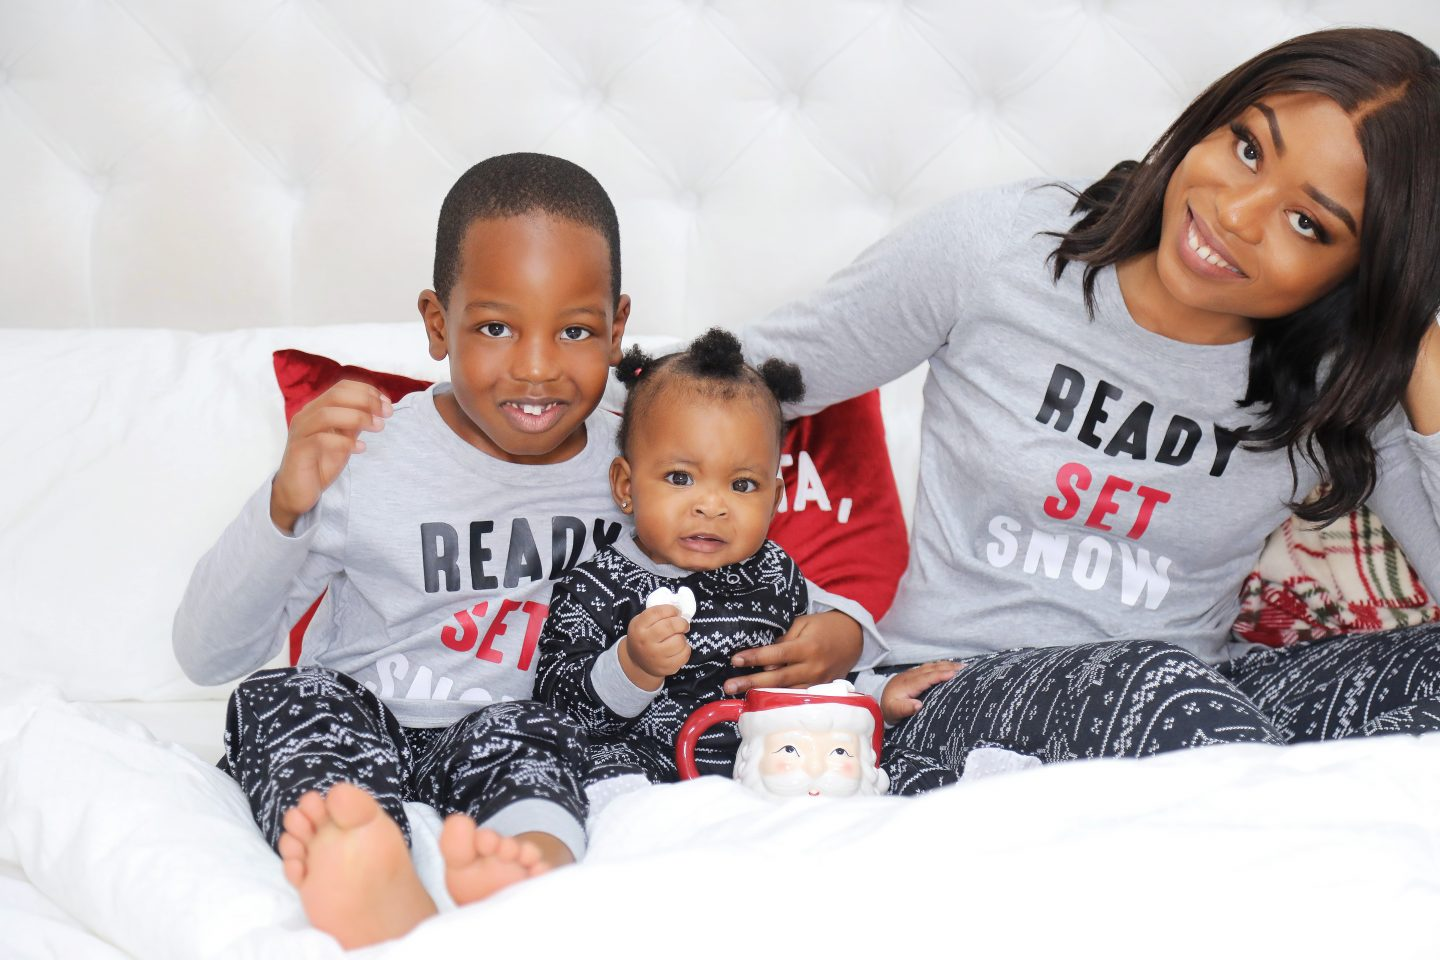 stella-eneanya-adewunmi-of-jadore-fashion-shares-family-christmas-tradition